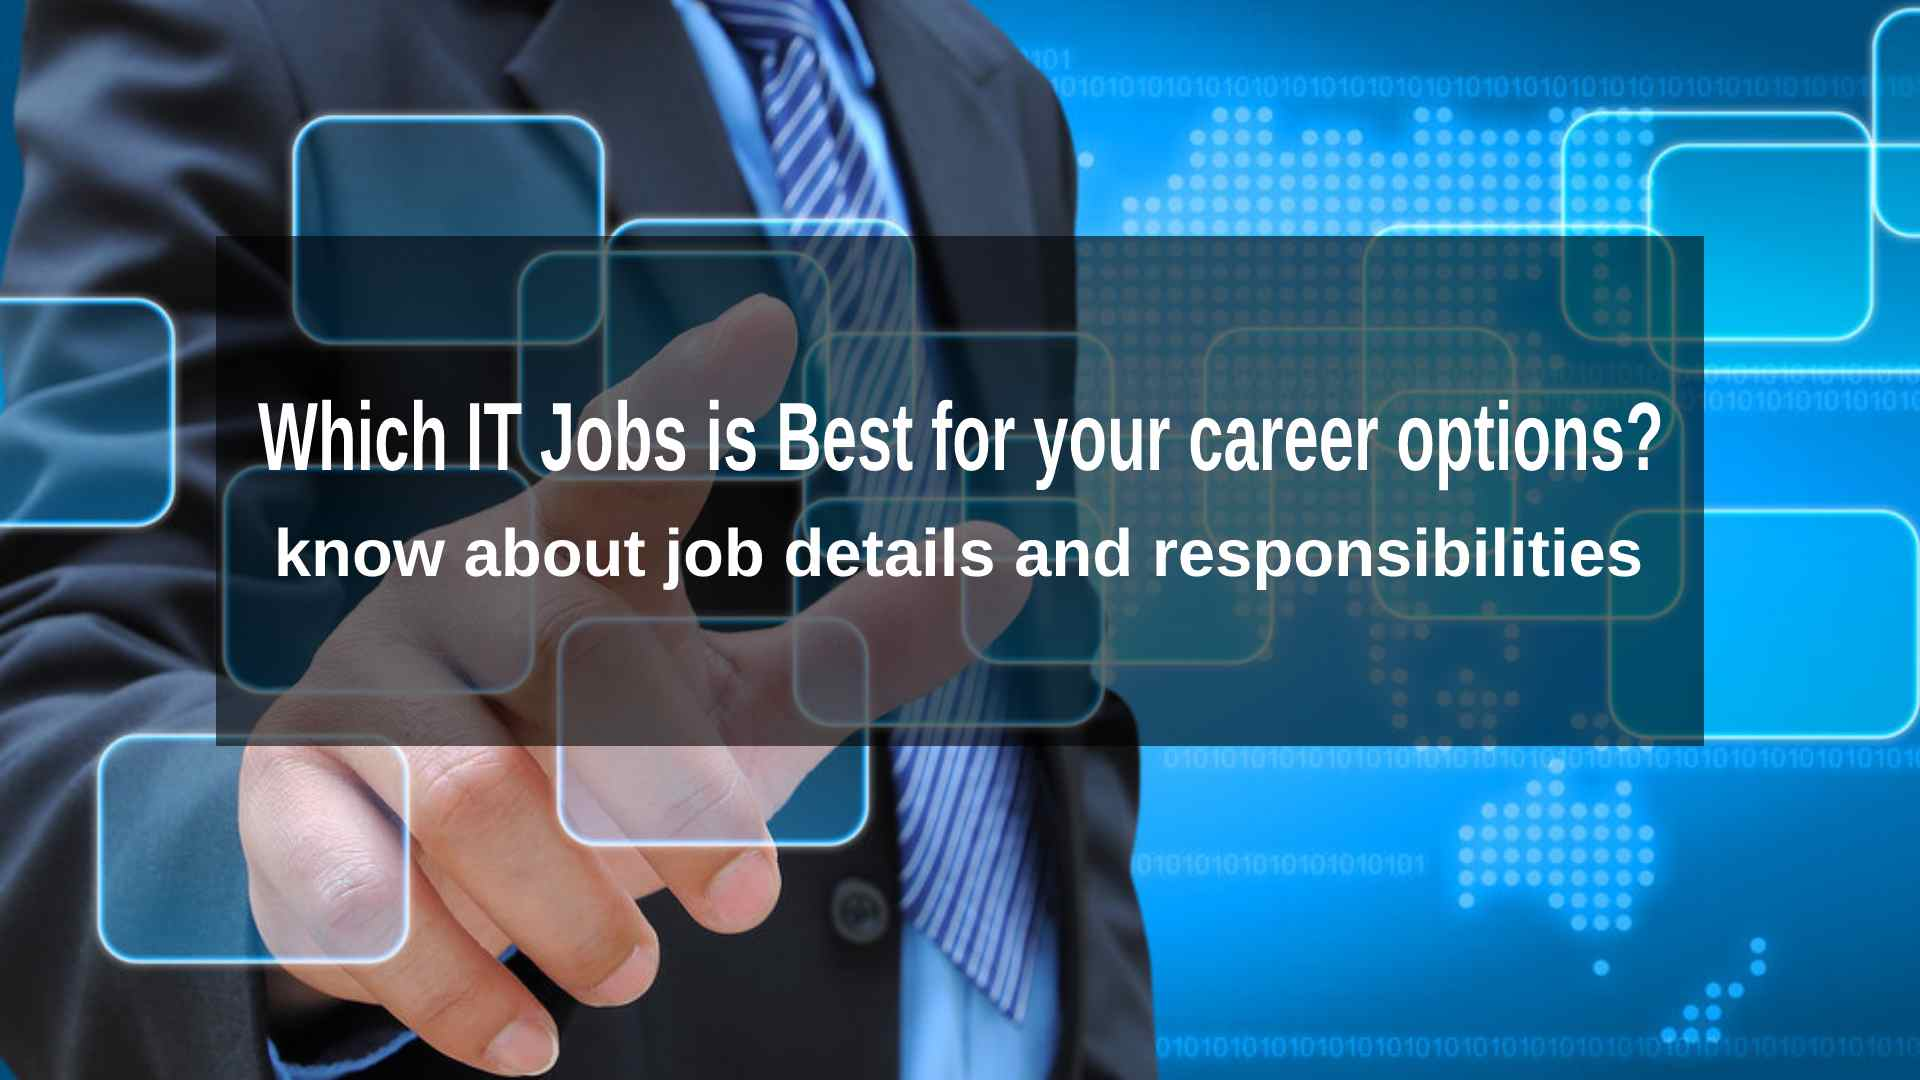 Which IT Jobs is Best for your career options? know about job details and responsibilities